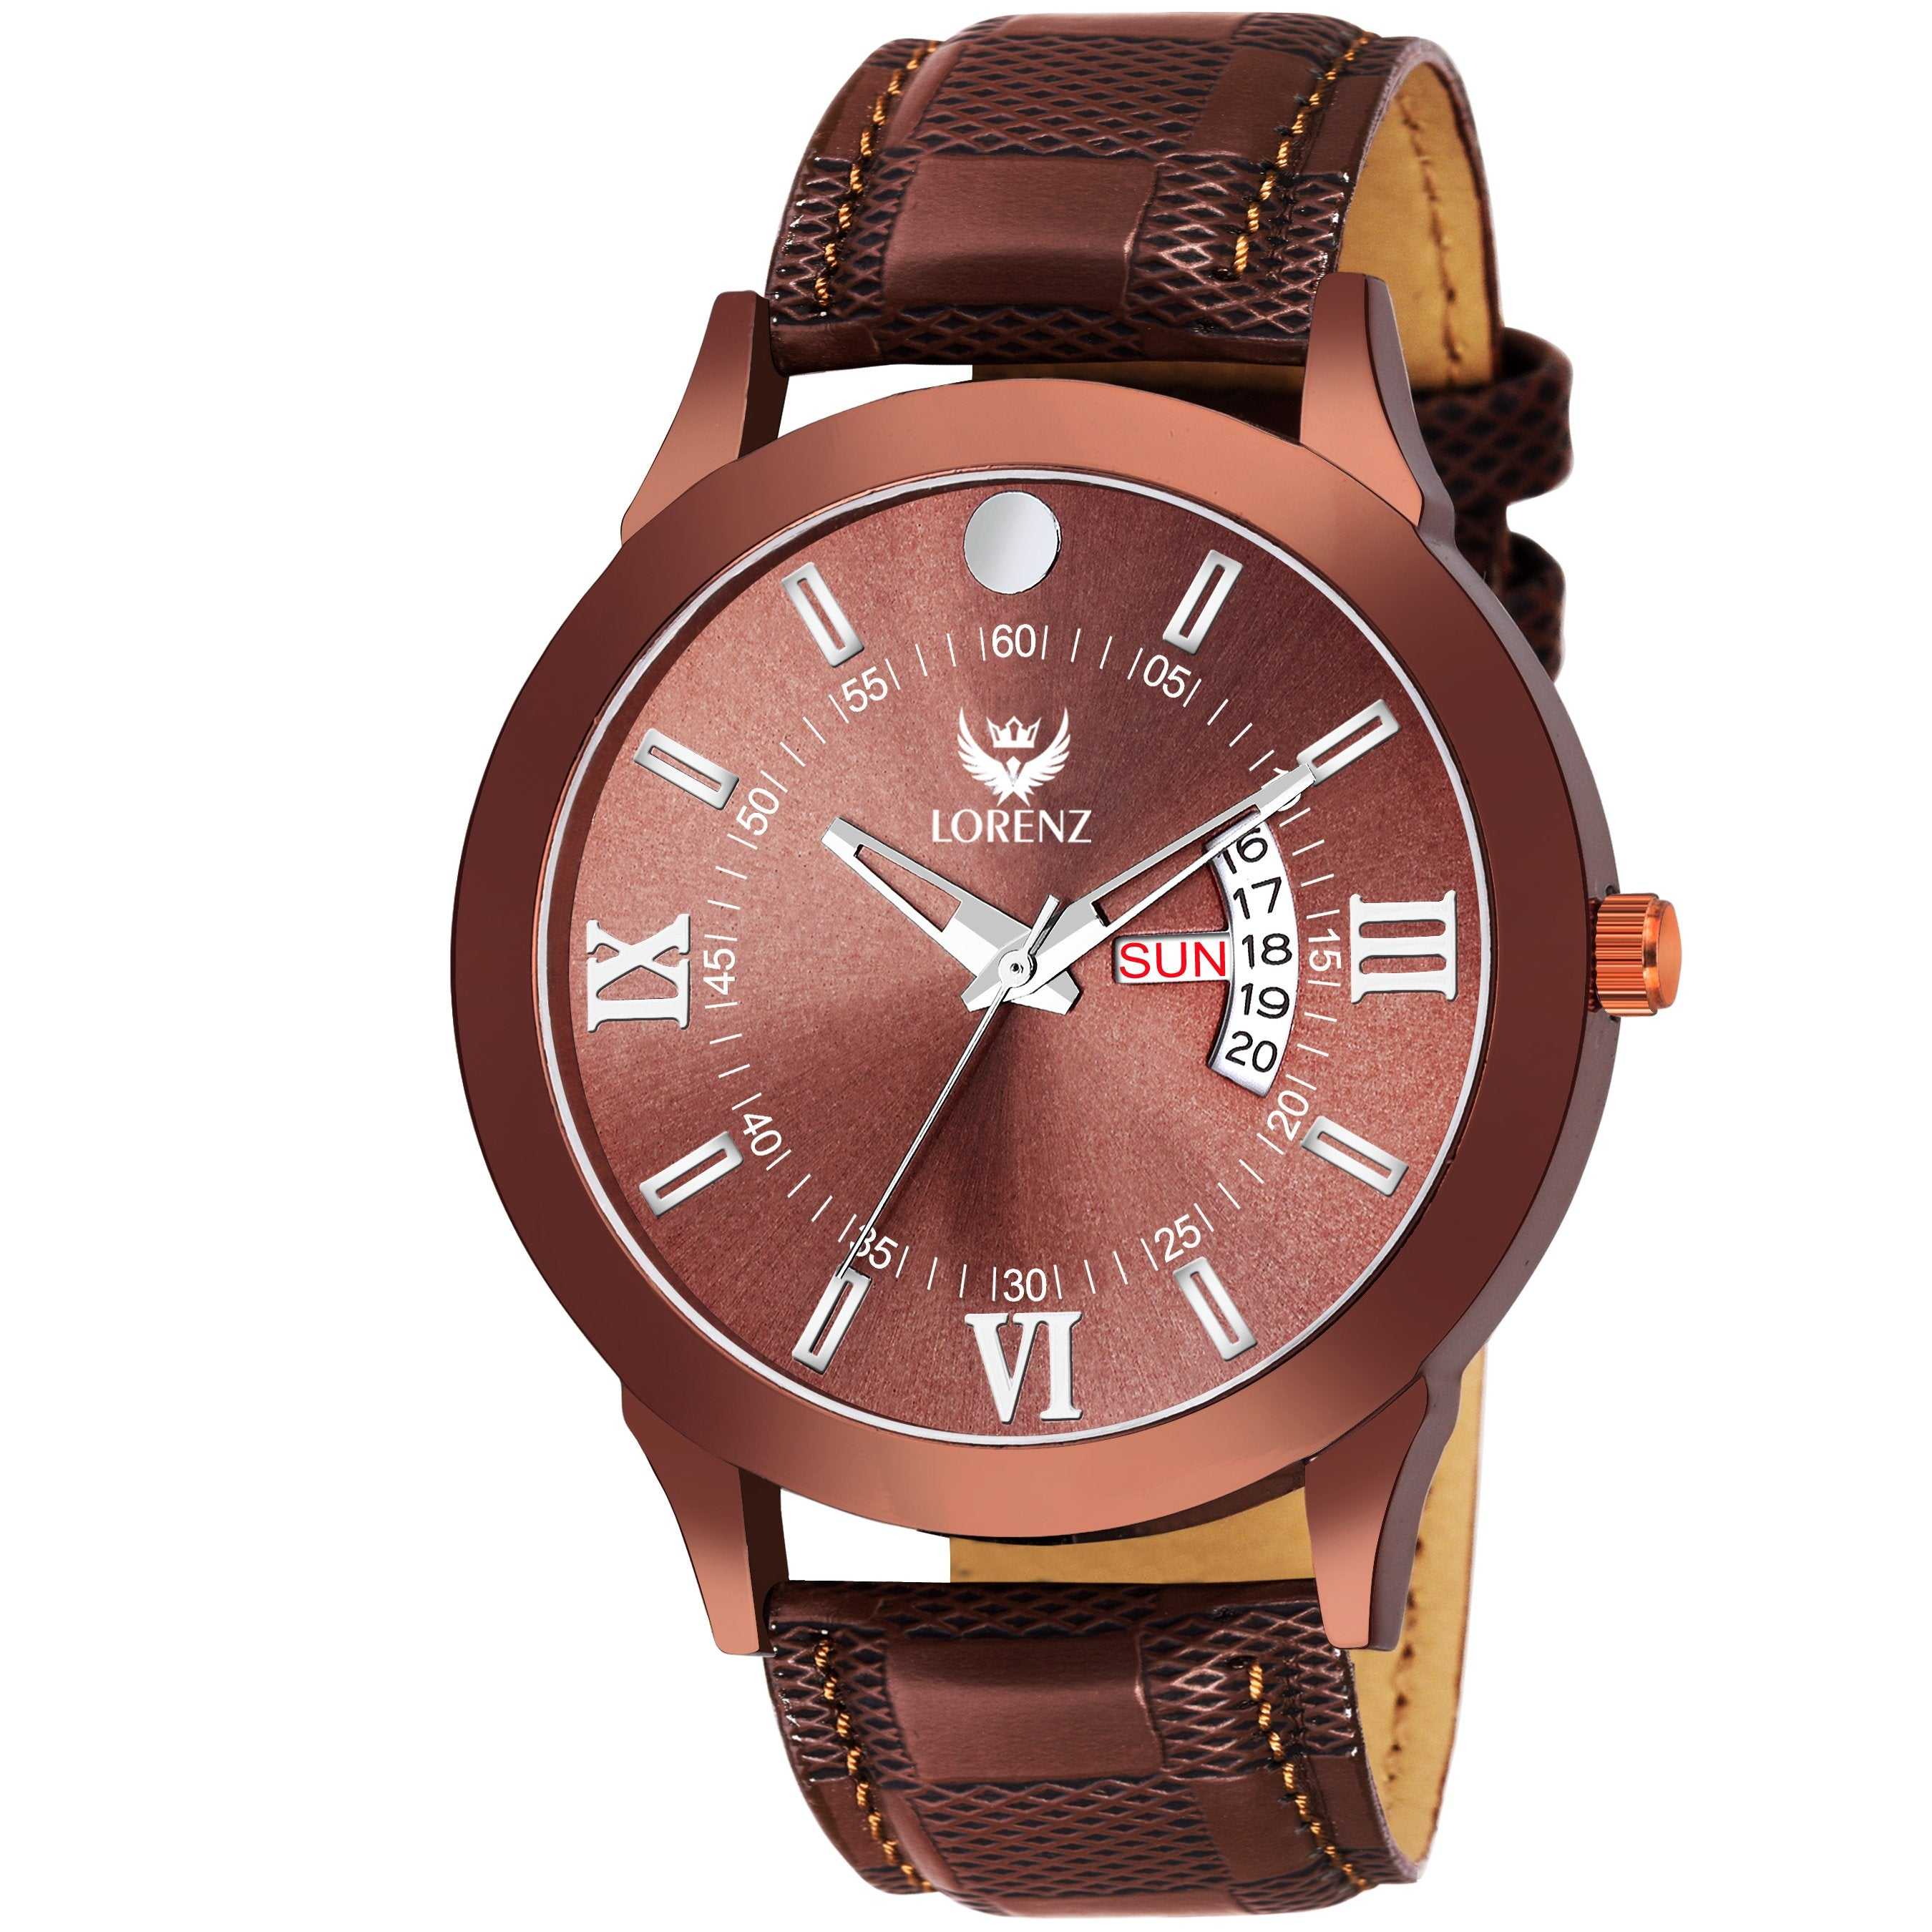 Lorenz Day & Date Brown Dial Watch for Men & Boys- MK-2037W - Lorenz Fashion